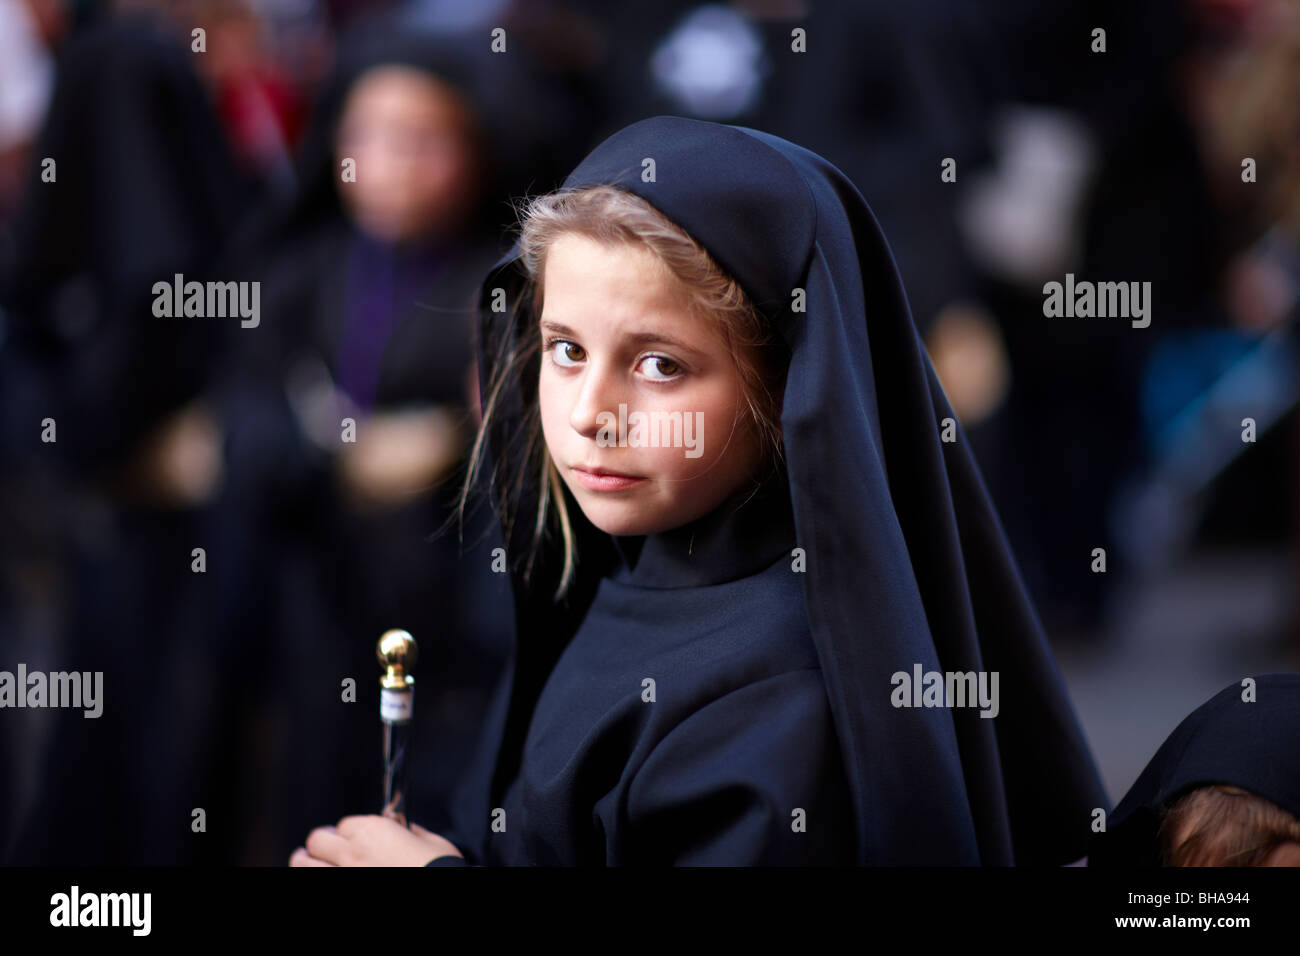 a child in the Semana Santa procession in Malaga, Andalucia, Spain - Stock Image